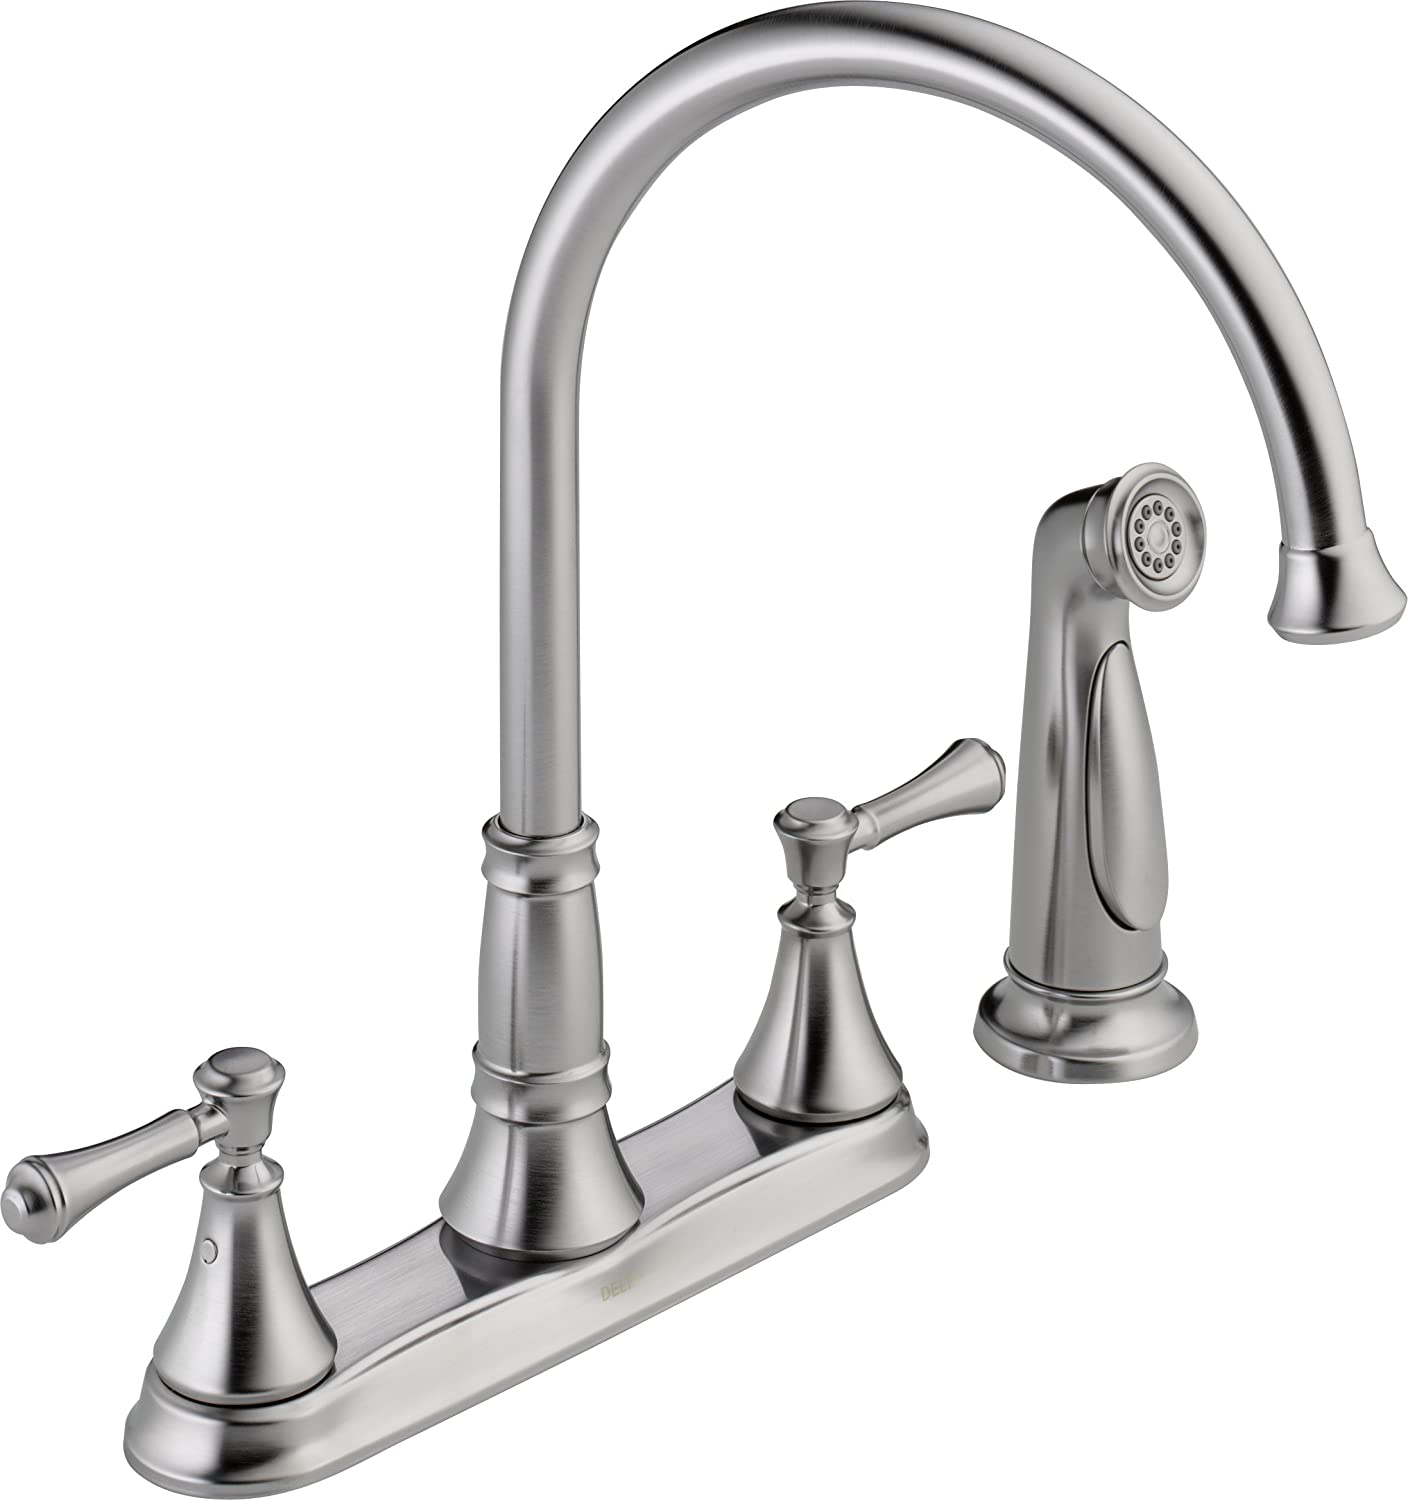 delta faucet 2497lf ar cidy two handle kitchen faucet with spray arctic stainless touch on kitchen sink faucets amazon com